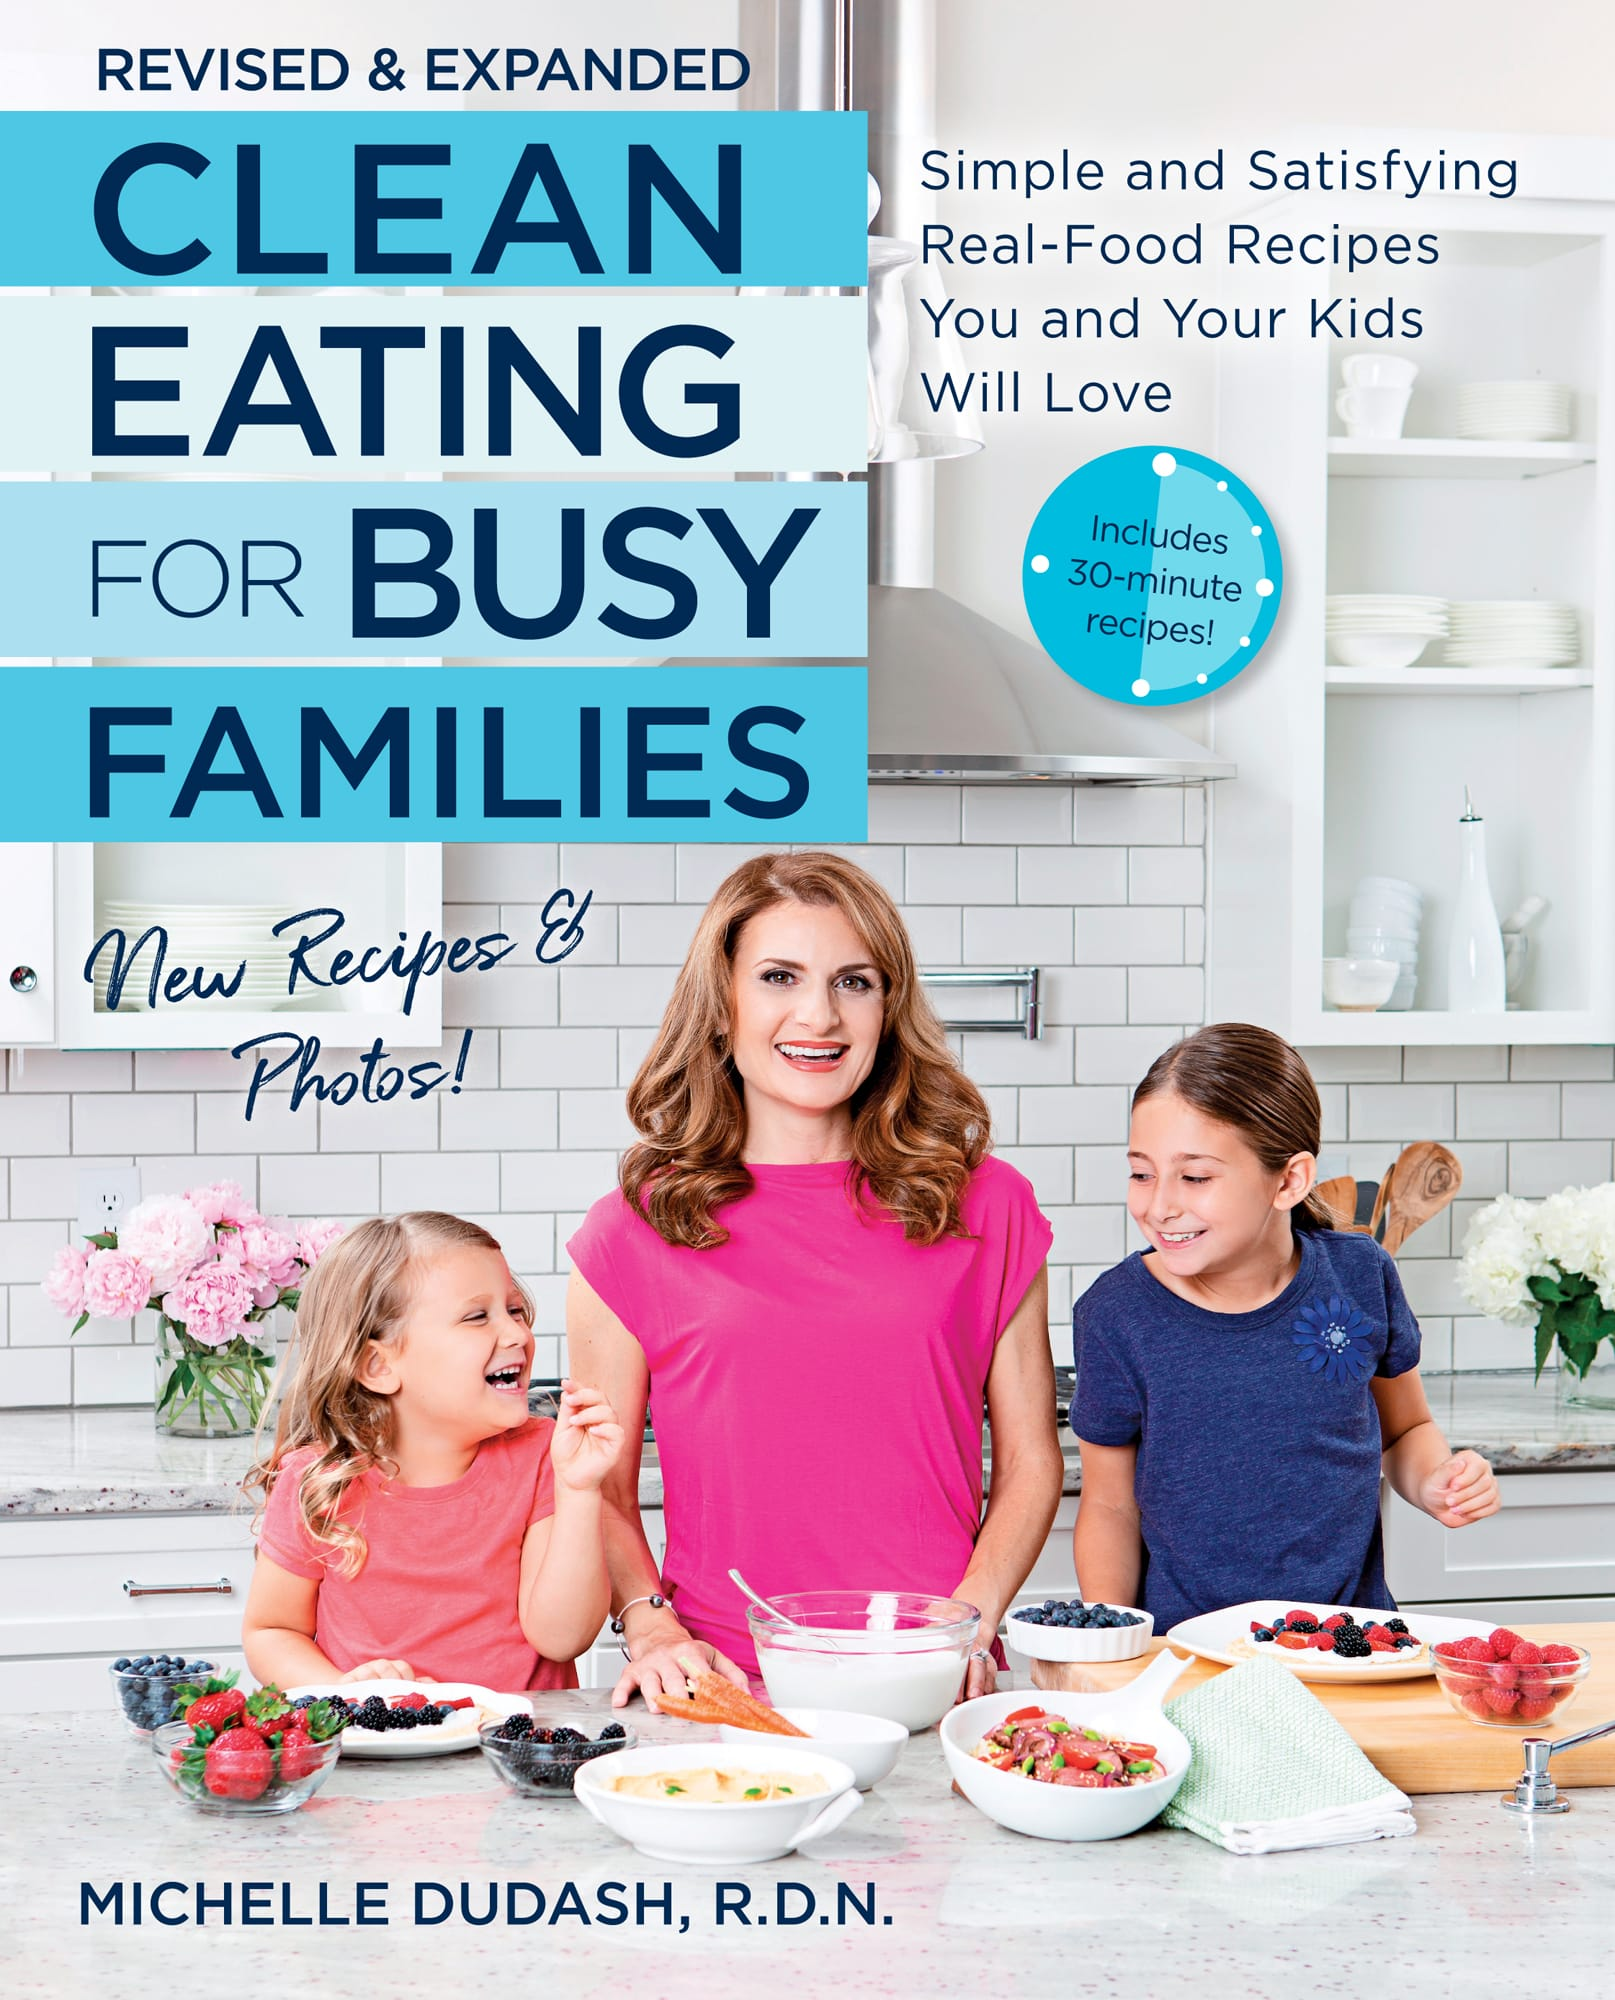 Clean Eating for Busy Families Simple and Satisfying Real-Food Recipes You and Your Kids Will Love